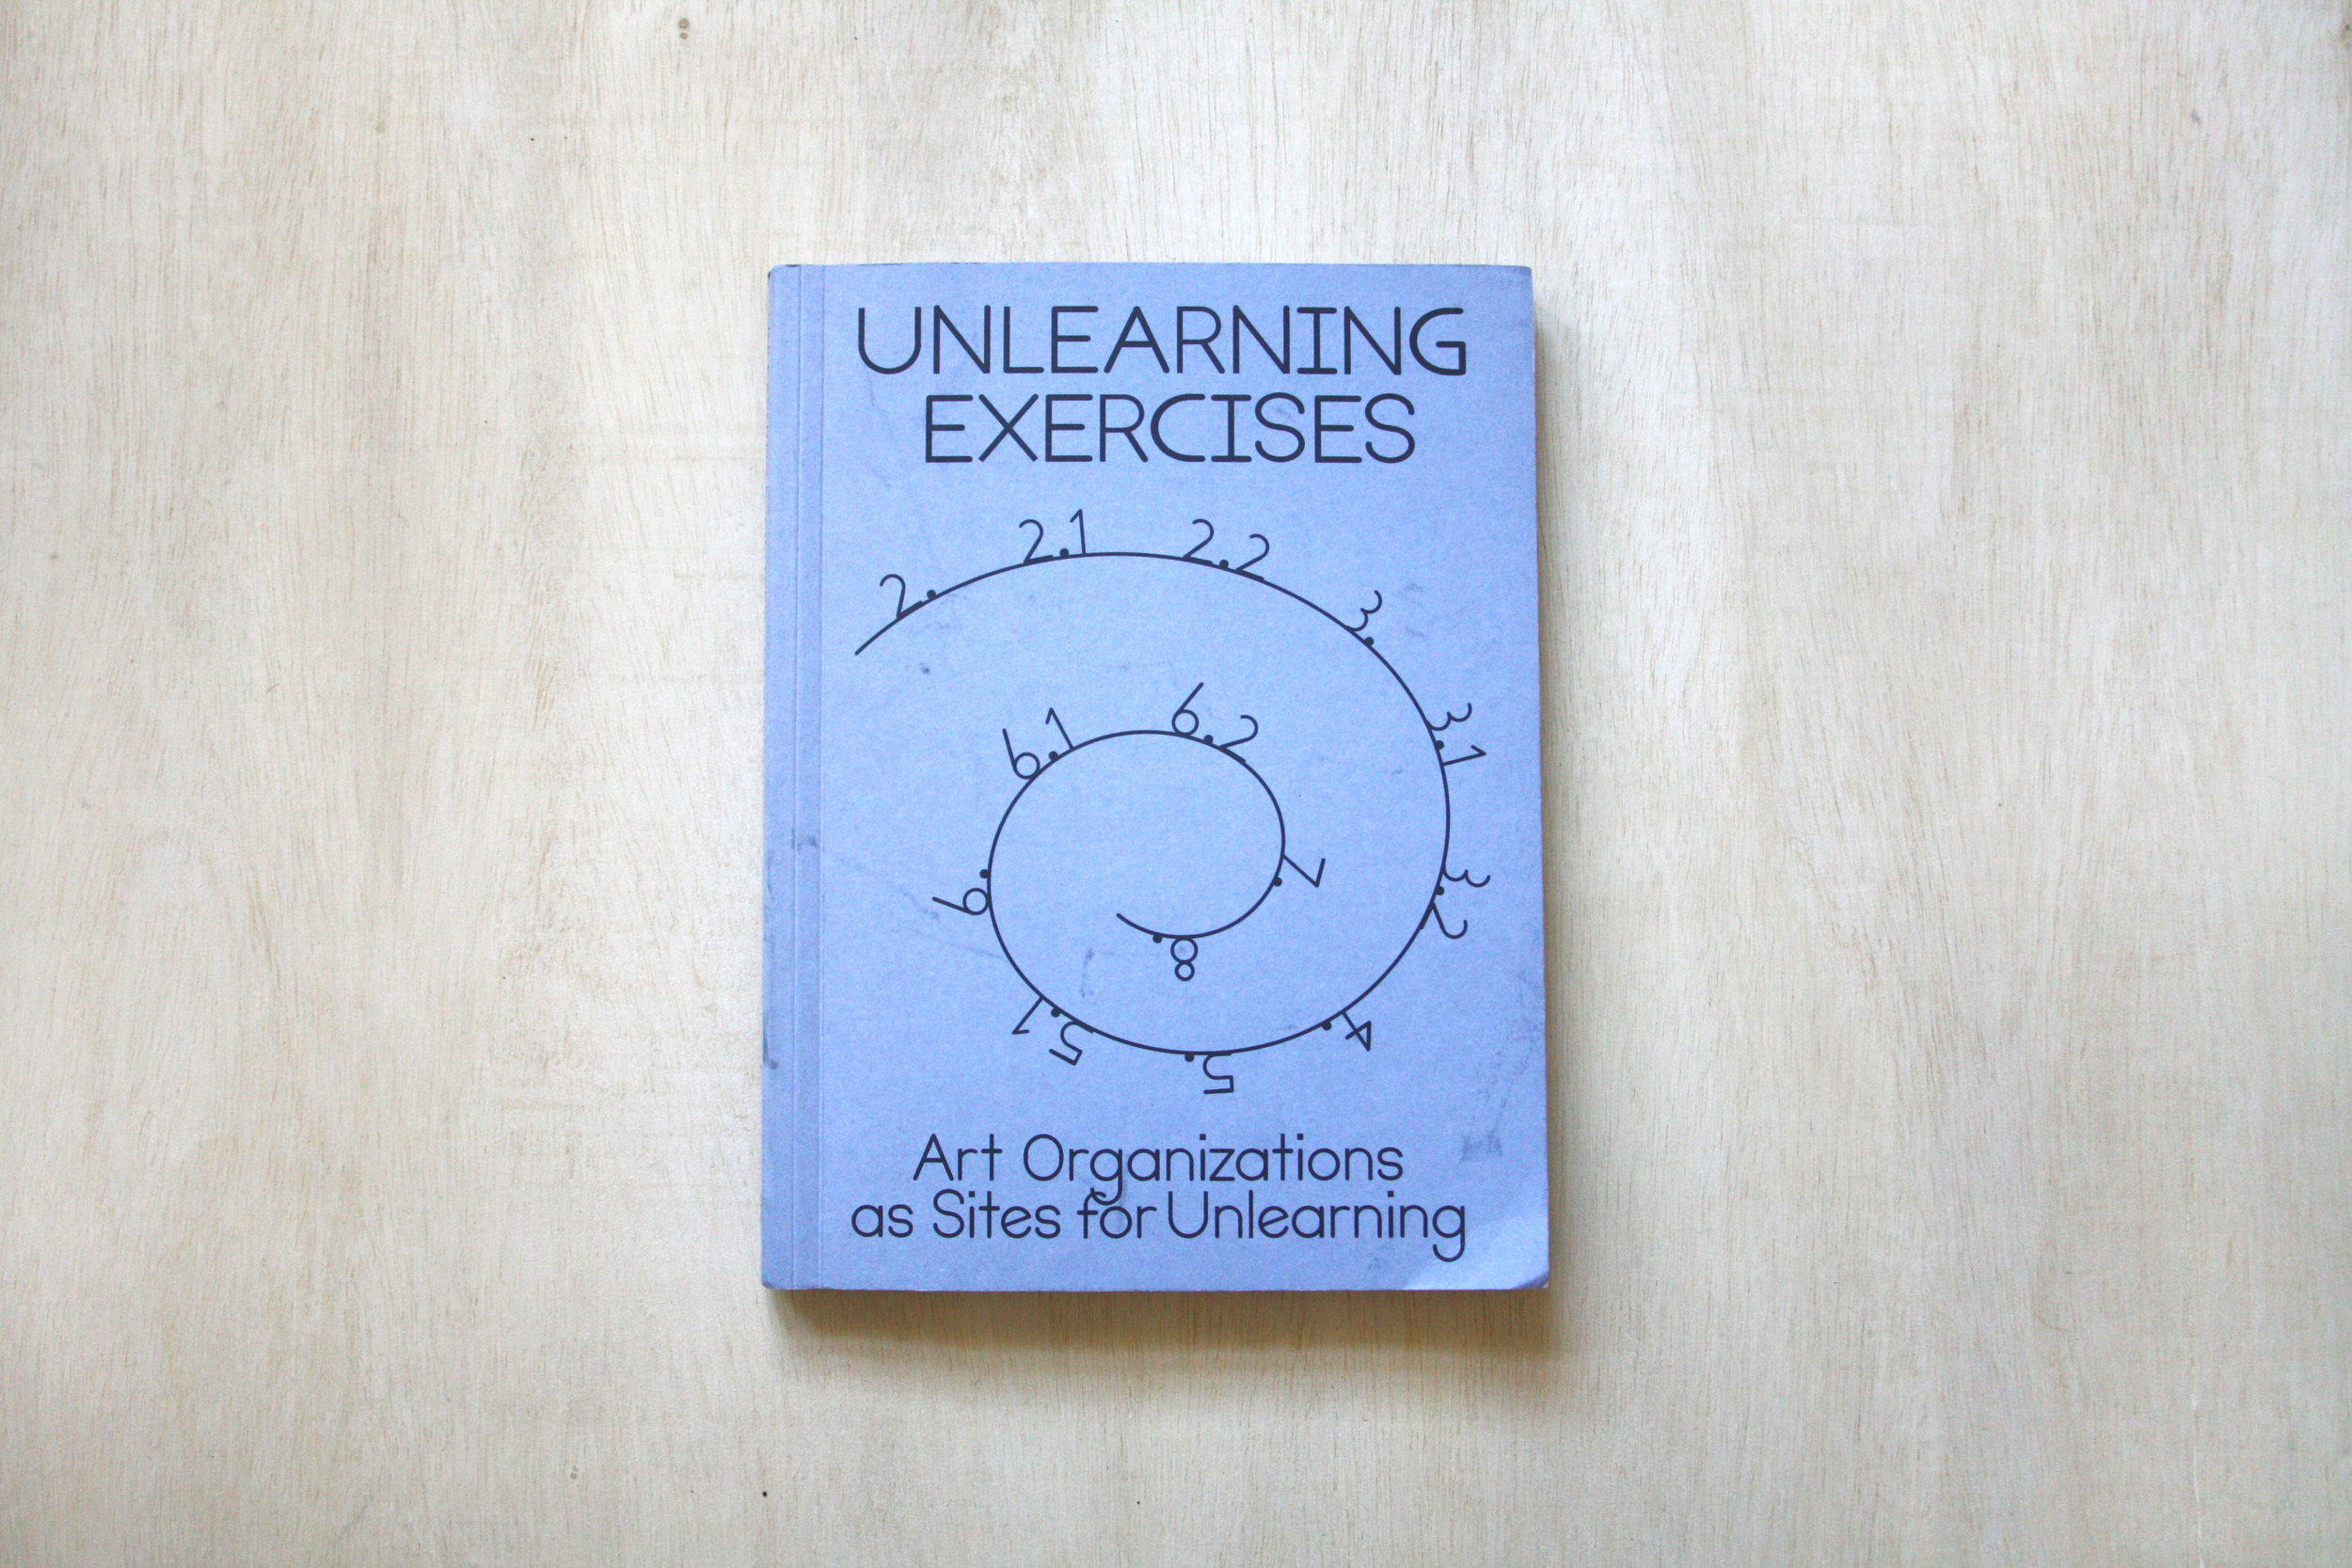 Unlearning Exercises: Art Organizations as Sites for Unlearning  by Emily Pethick, Andrea Phillips, Kerstin Stakemeier, Yolande Van Der Heide, Binna Choi (Editor)